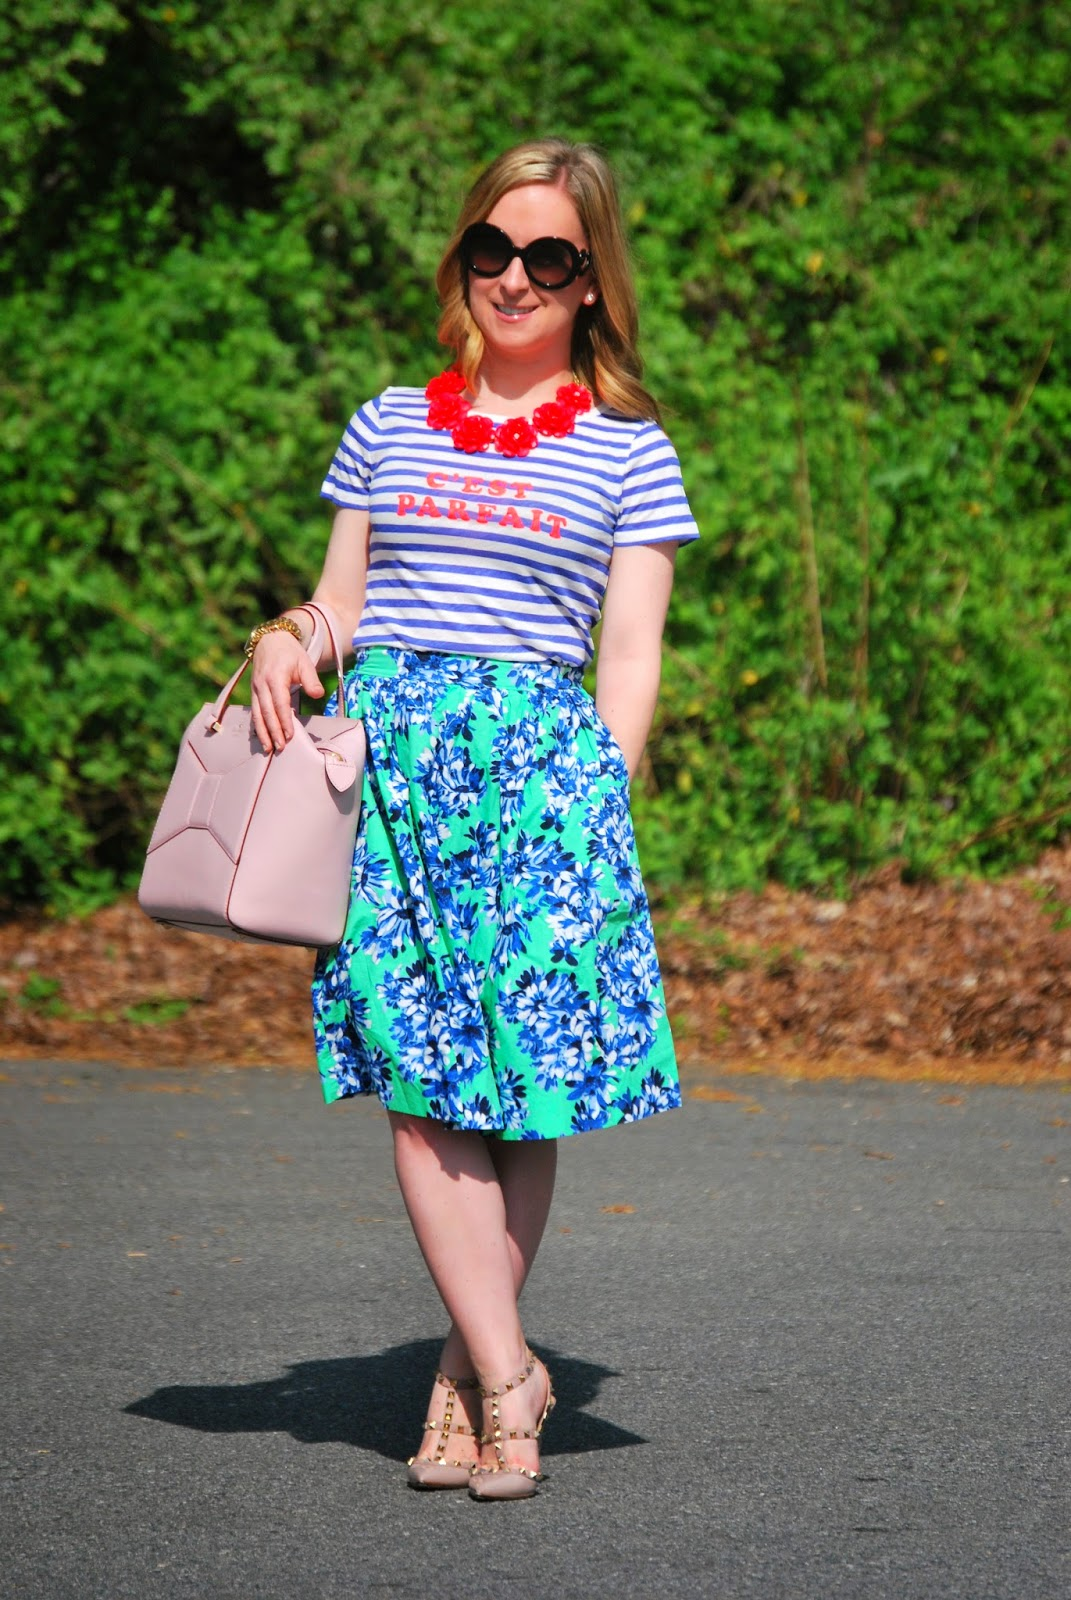 Jcrew, optic floral, Kate Spade, Beau bag, Valentino, rockstuds, prada